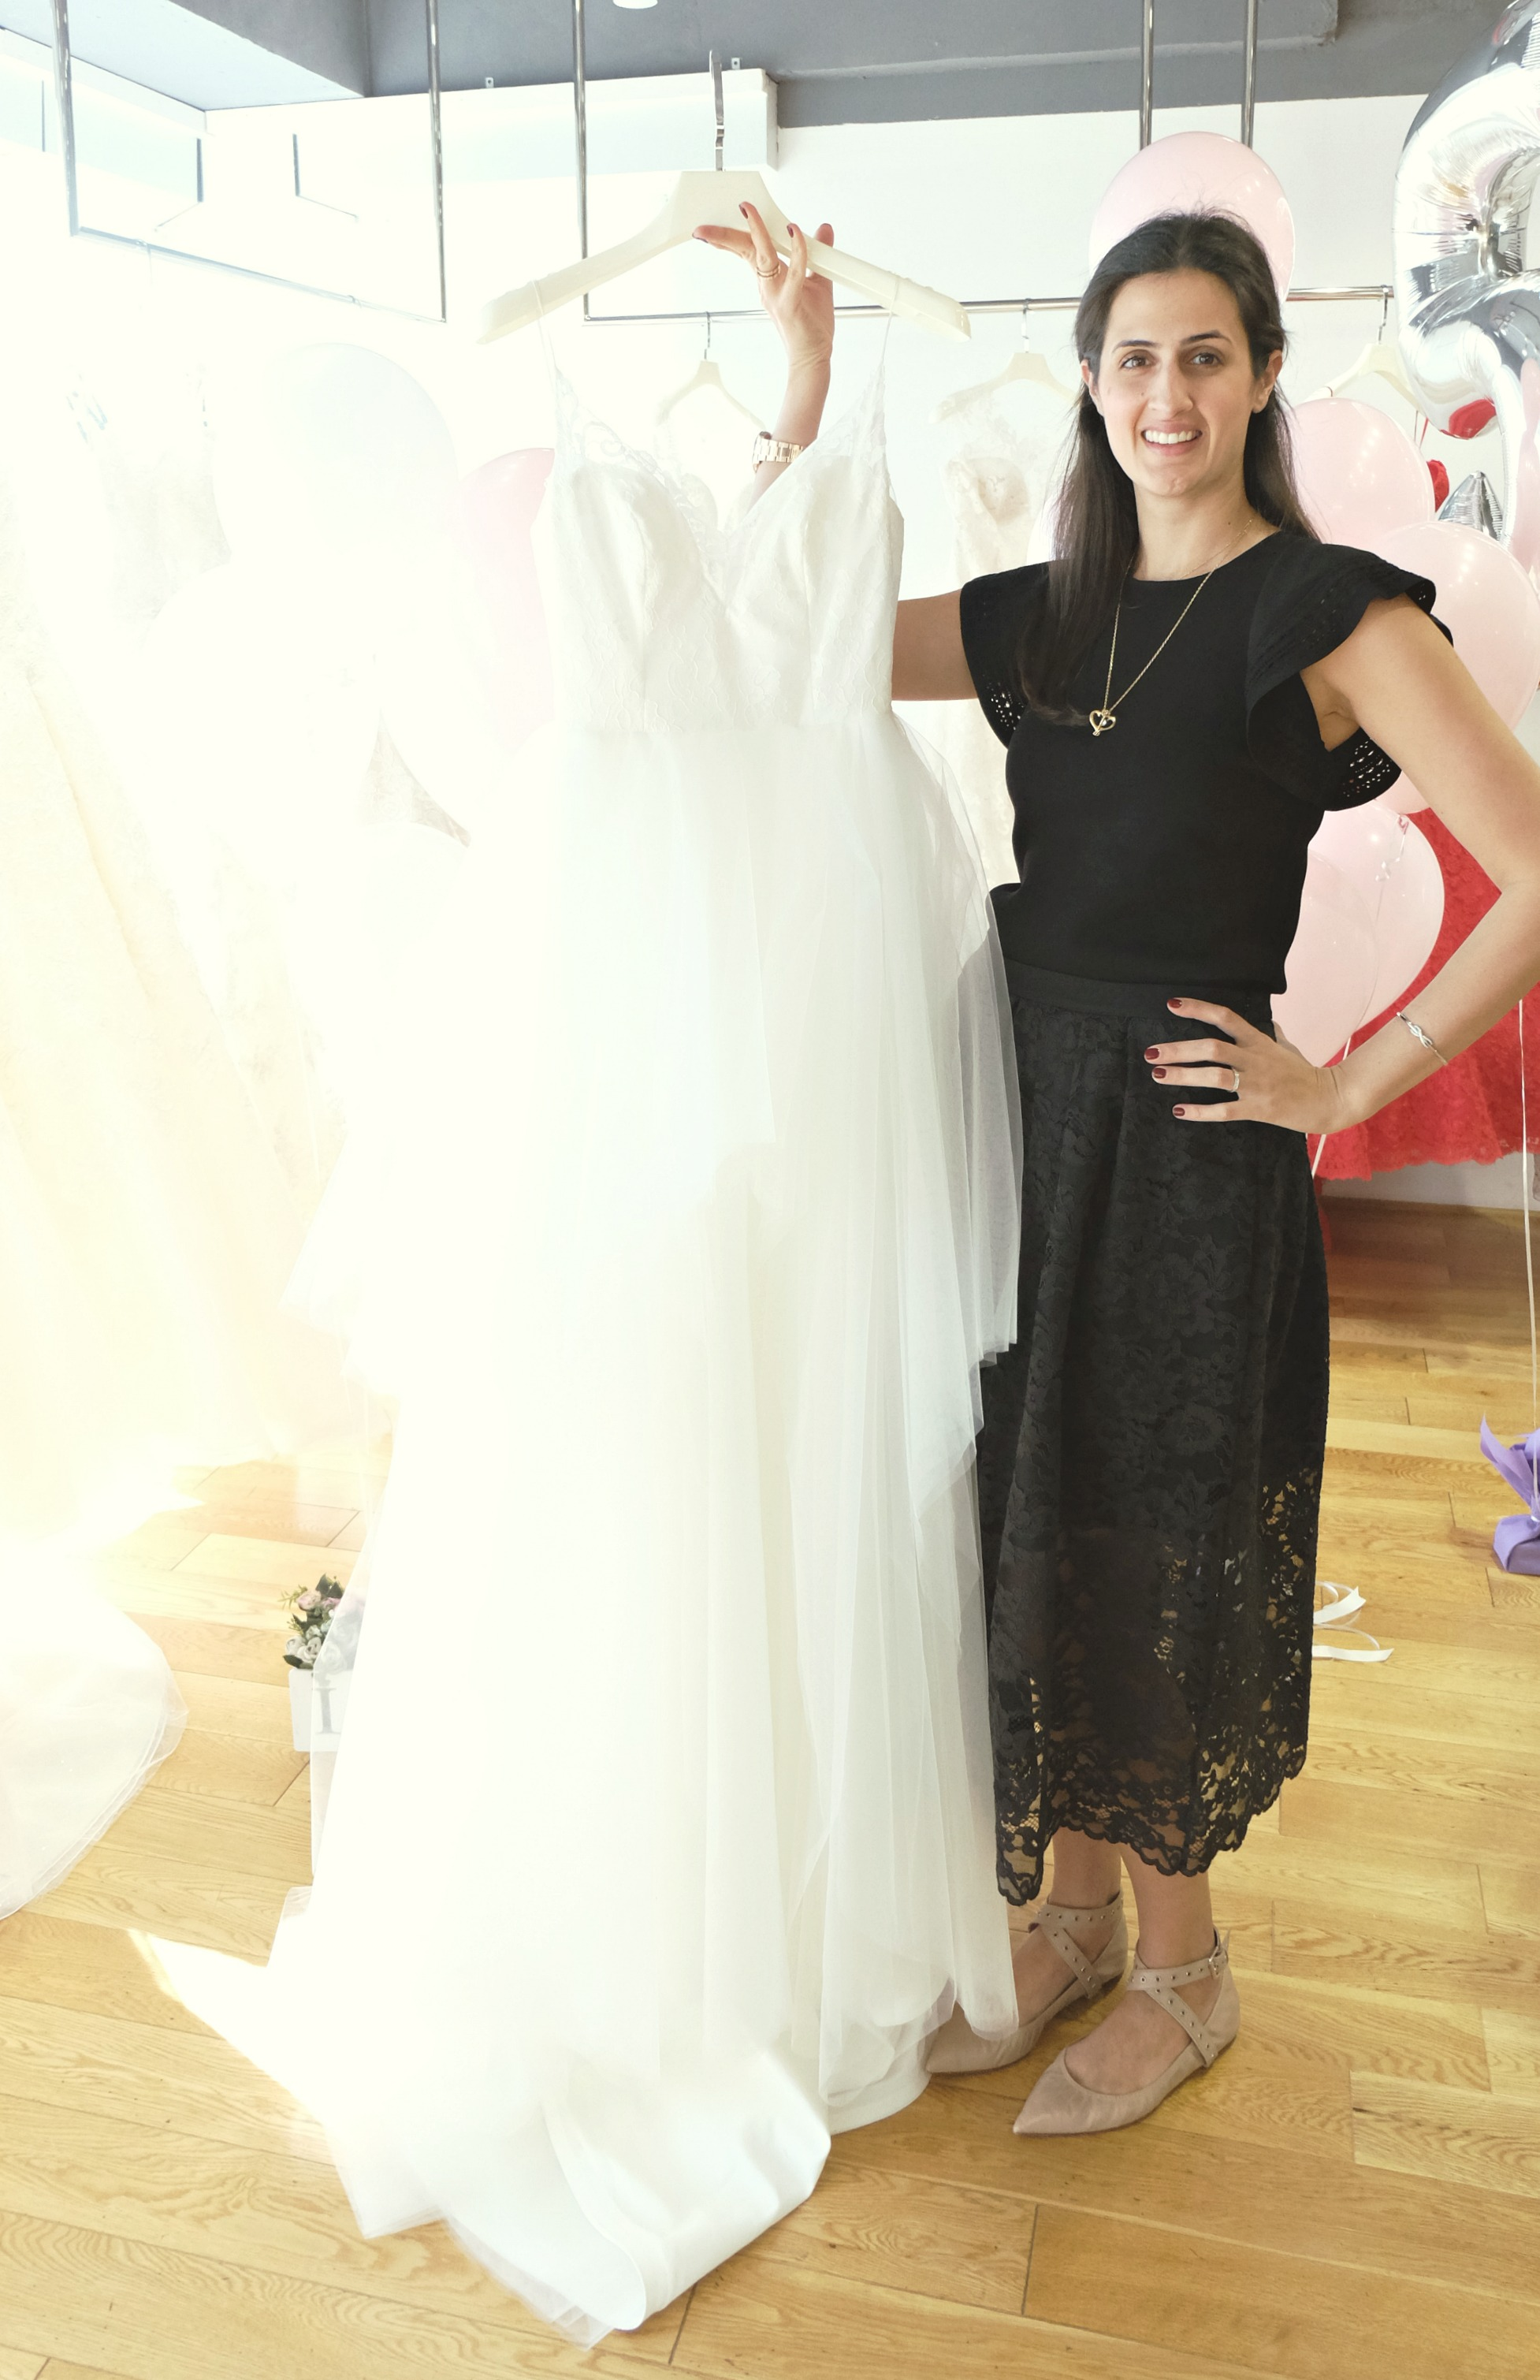 Diala of The Bridal Showroom